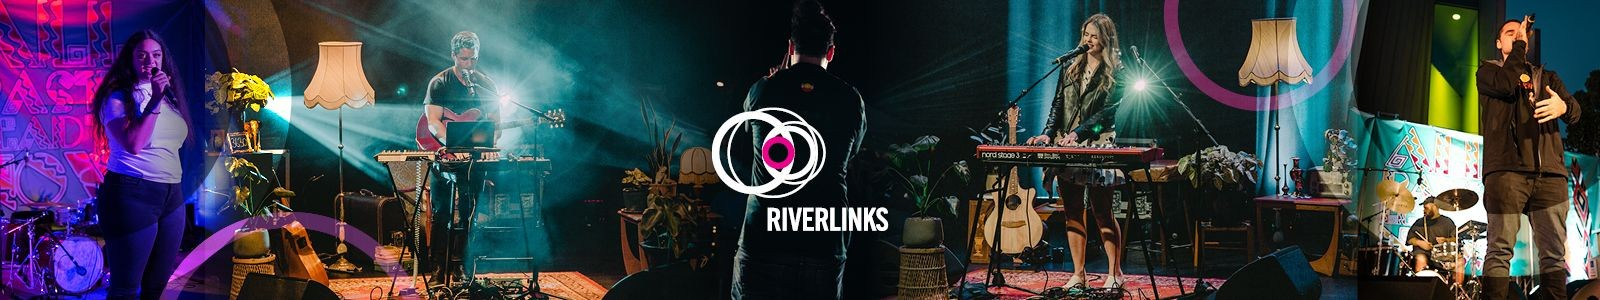 Riverlinks Generic Promotion